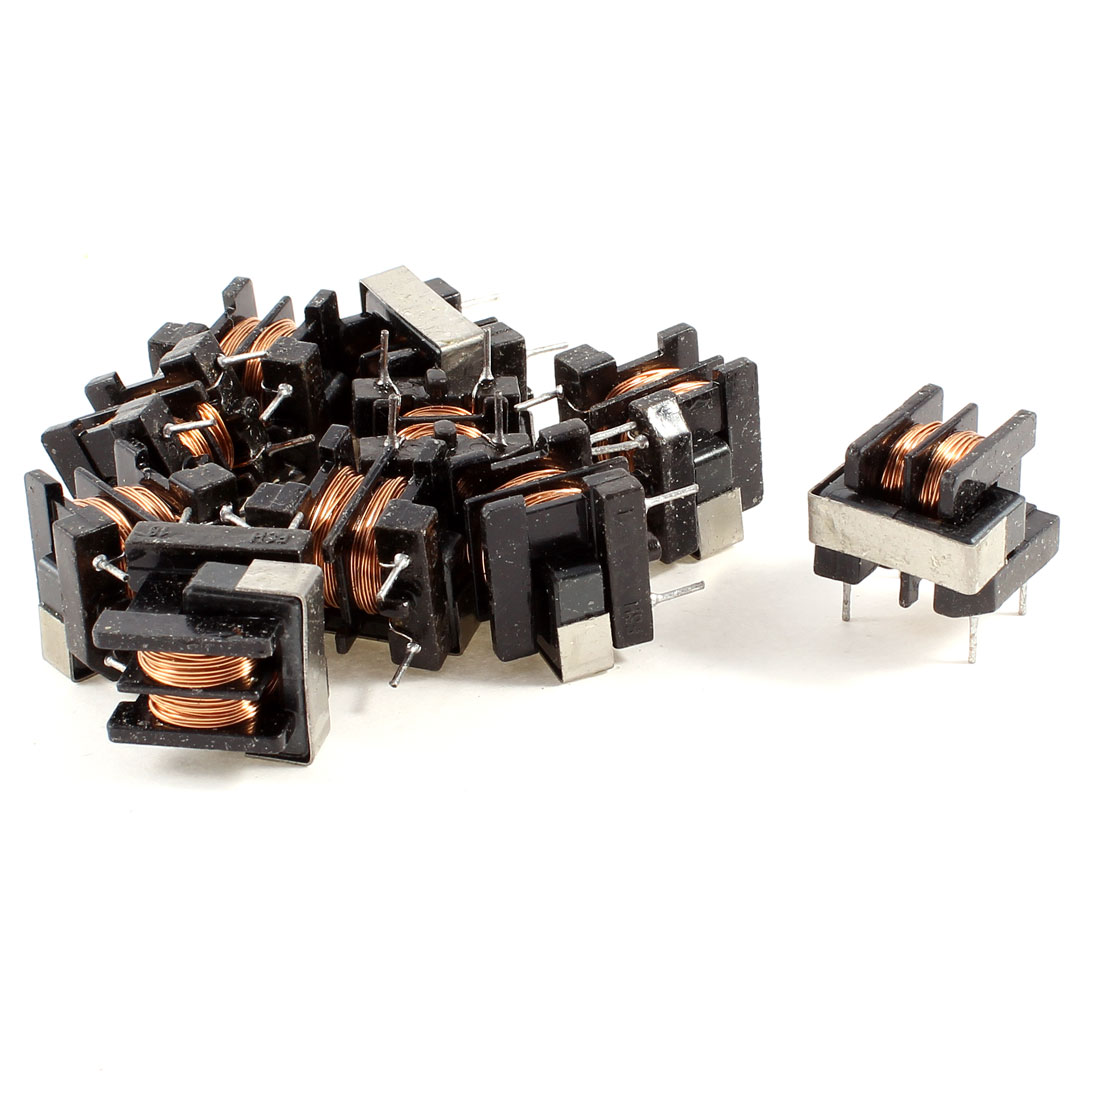 10 Pcs UF10.5 Common Mode Line Filter Inductor 15MH 0.5Ohm 3A Coil